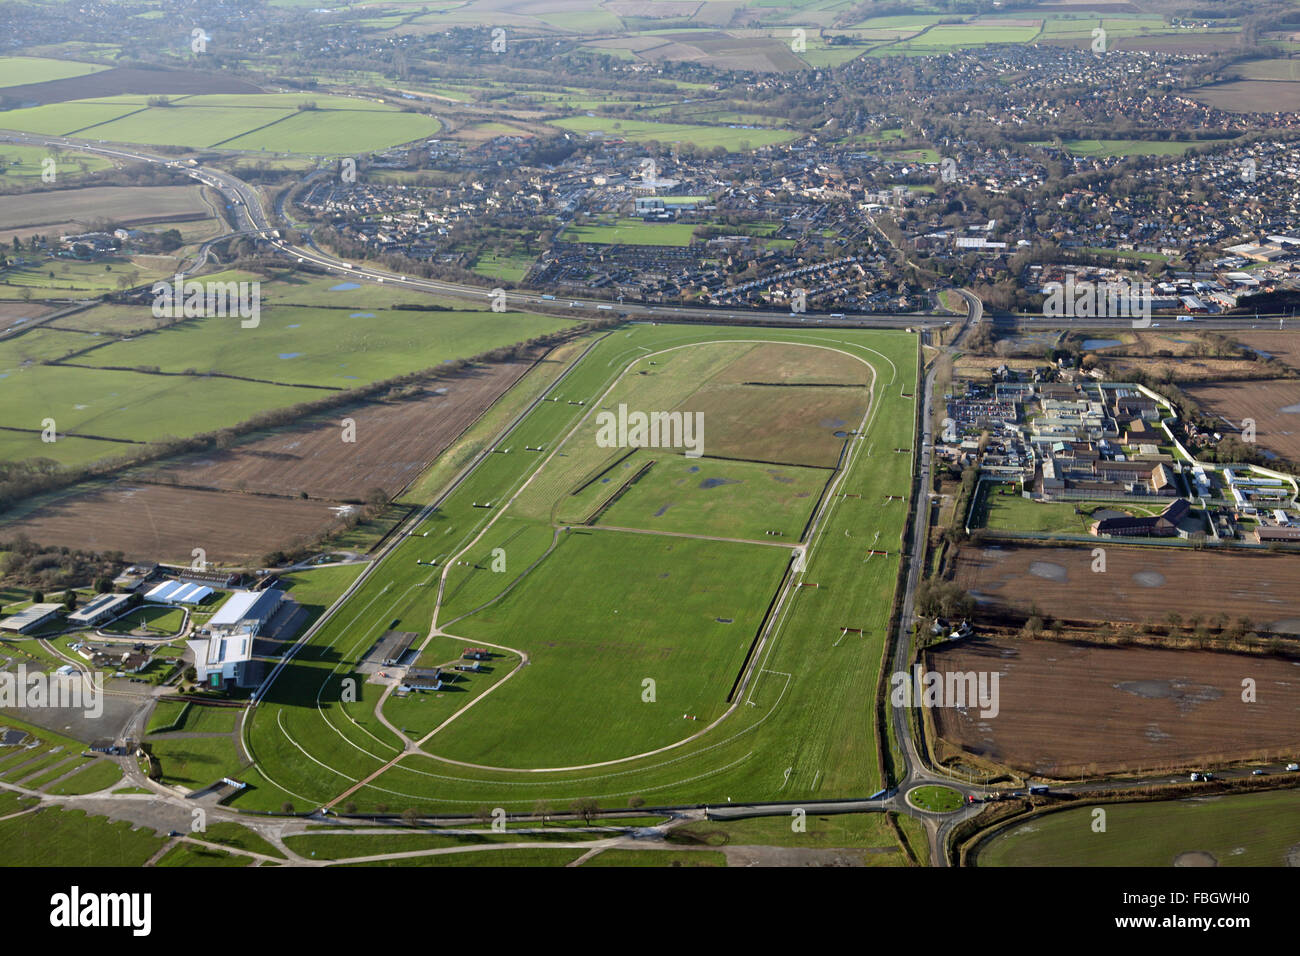 aerial view of Wetherby and the Racecourse, Yorkshire, UK Stock Photo